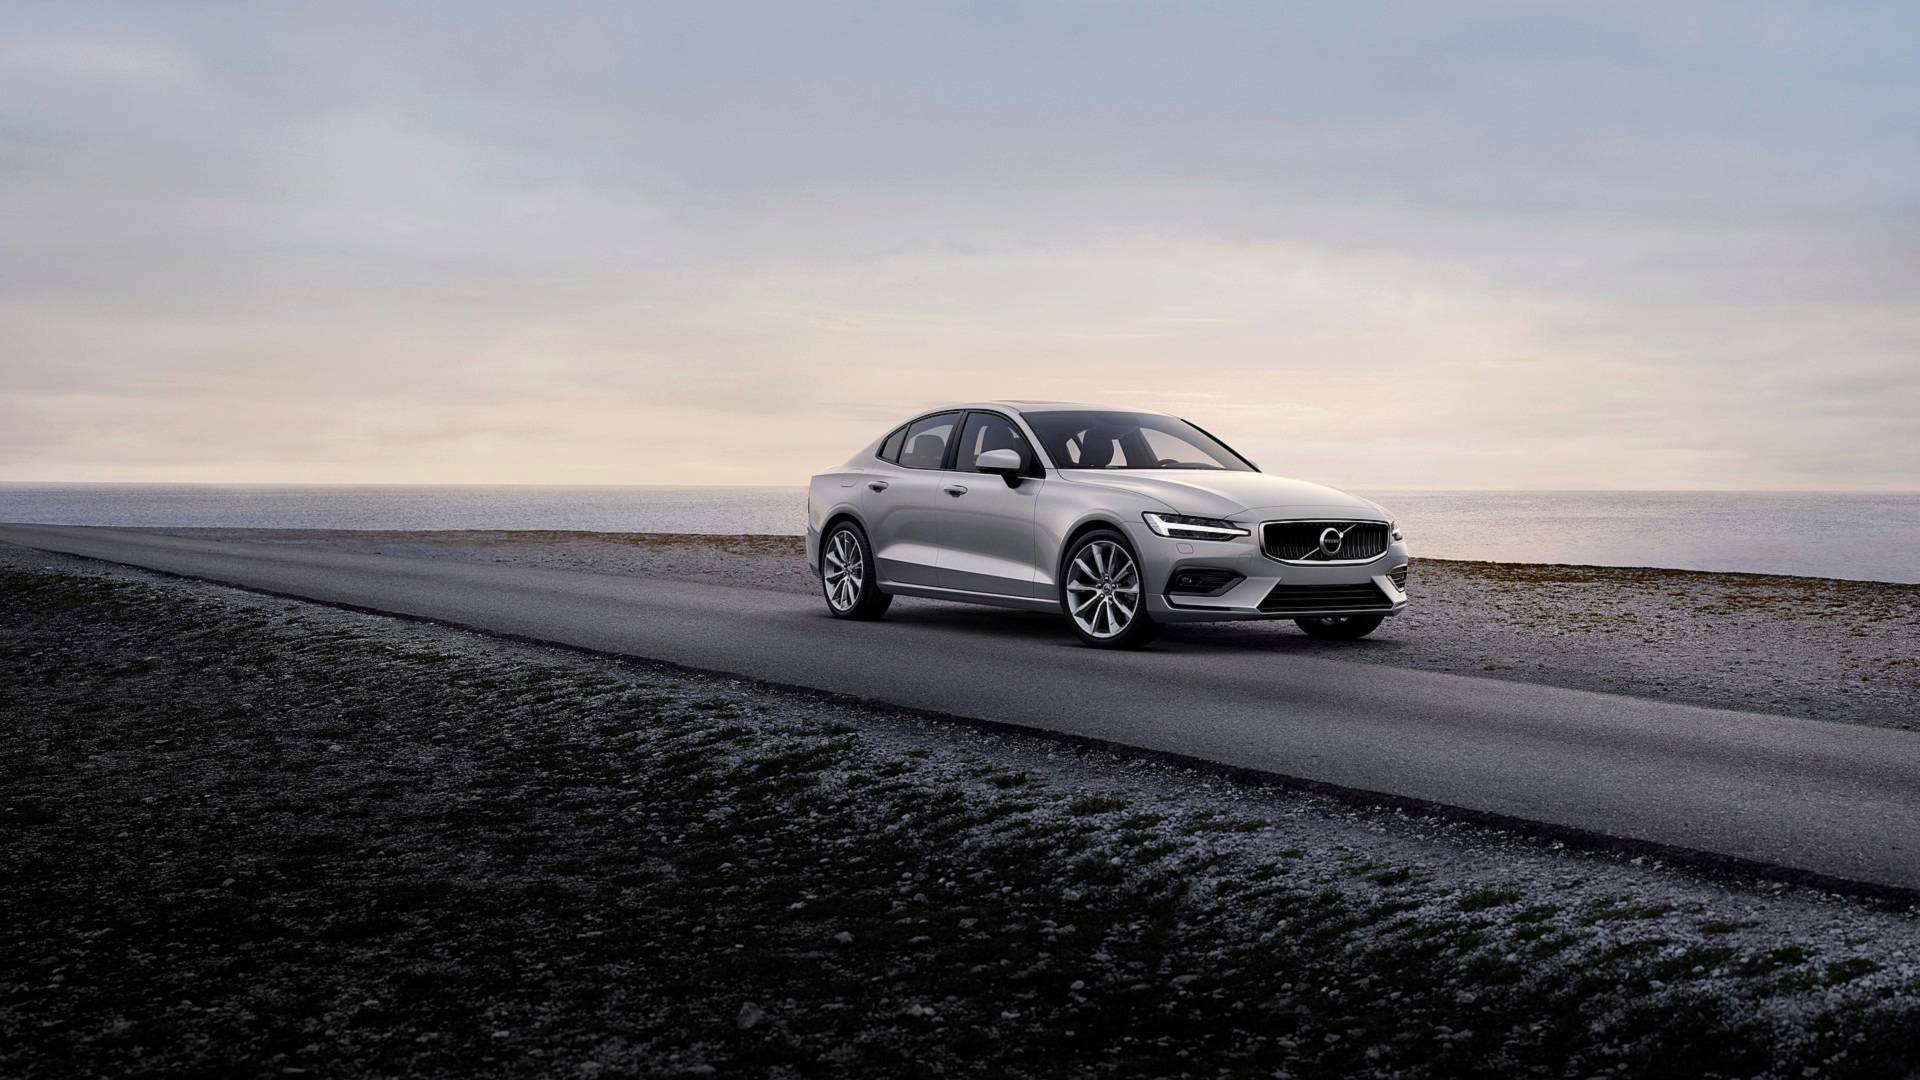 2019 Volvo S60 Delivers Sharp Styling Up To 415 Hp